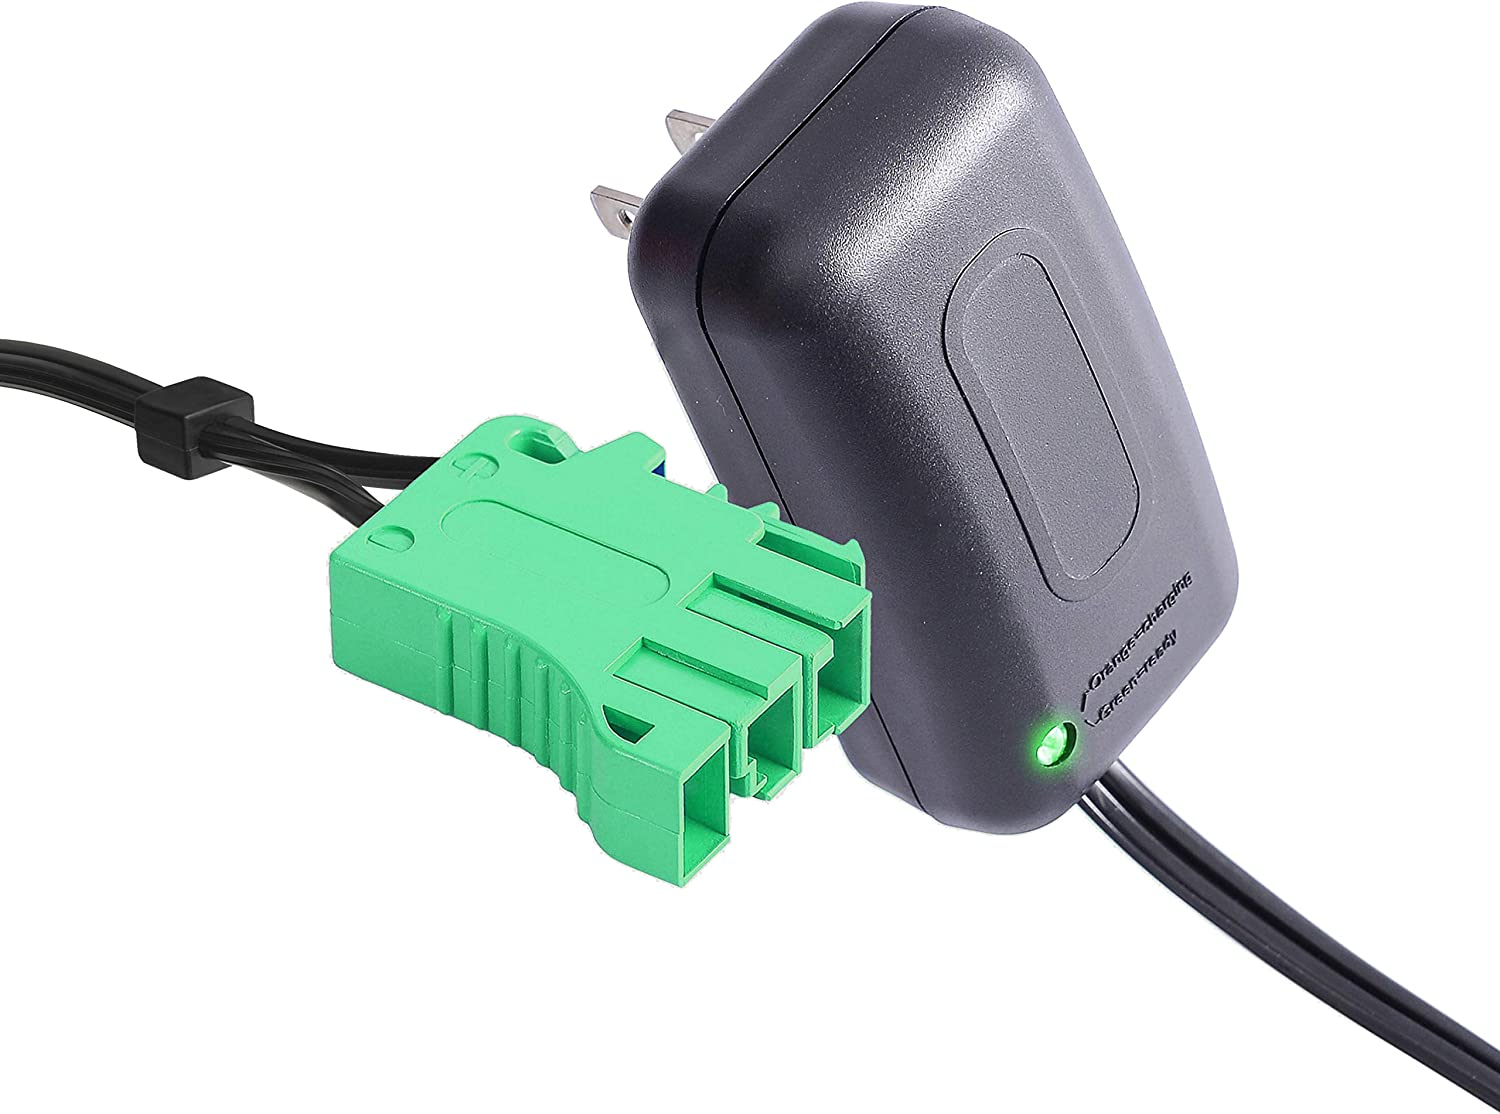 6 Volt Battery Charger for Peg Perego, 6V Charger Works with Peg-Perego Santa Fe Train John Deere Mini Power Ducati Desmosedici John Deere Farm Small Tractor Powered Ride On Car Replaement Power